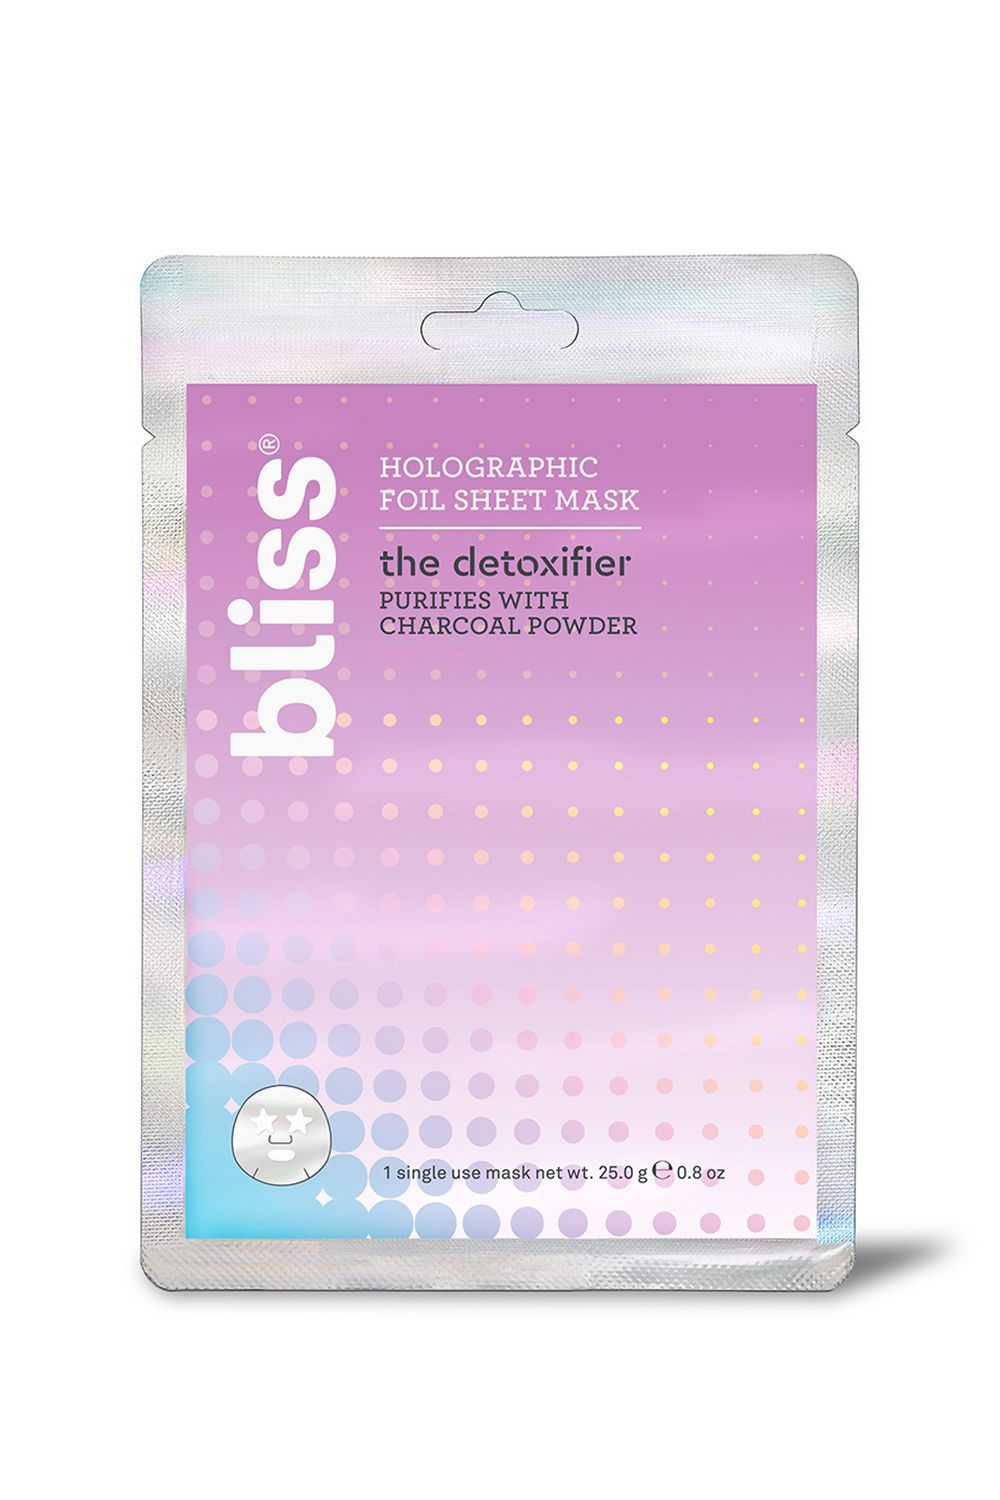 Bliss Hangover Fix Holographic Foil Sheet Mask Bliss Hangover Fix Holographic Foil Sheet Mask, $4 SHOP IT Had one too many martinis the night before? It's all good—the electrolytes and probiotics packed in this foil mask will breathe life back into your puffy, dehydrated skin.